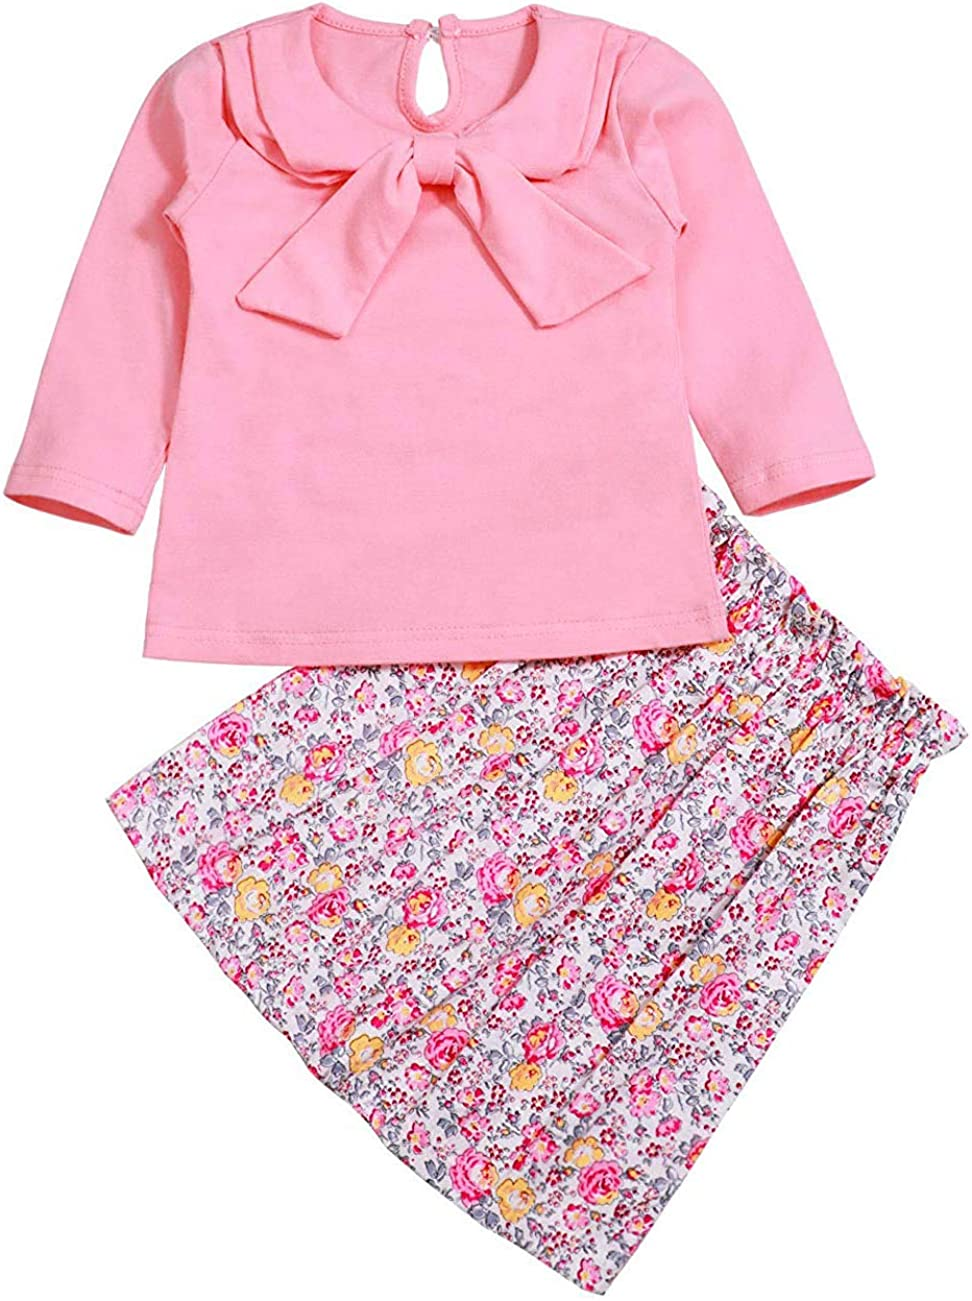 Baby Toddler Girls Long Sleeve Bowtie Shirt Elastic Floral Skirt Outfits Set Little Princess Basic Dress Clothes